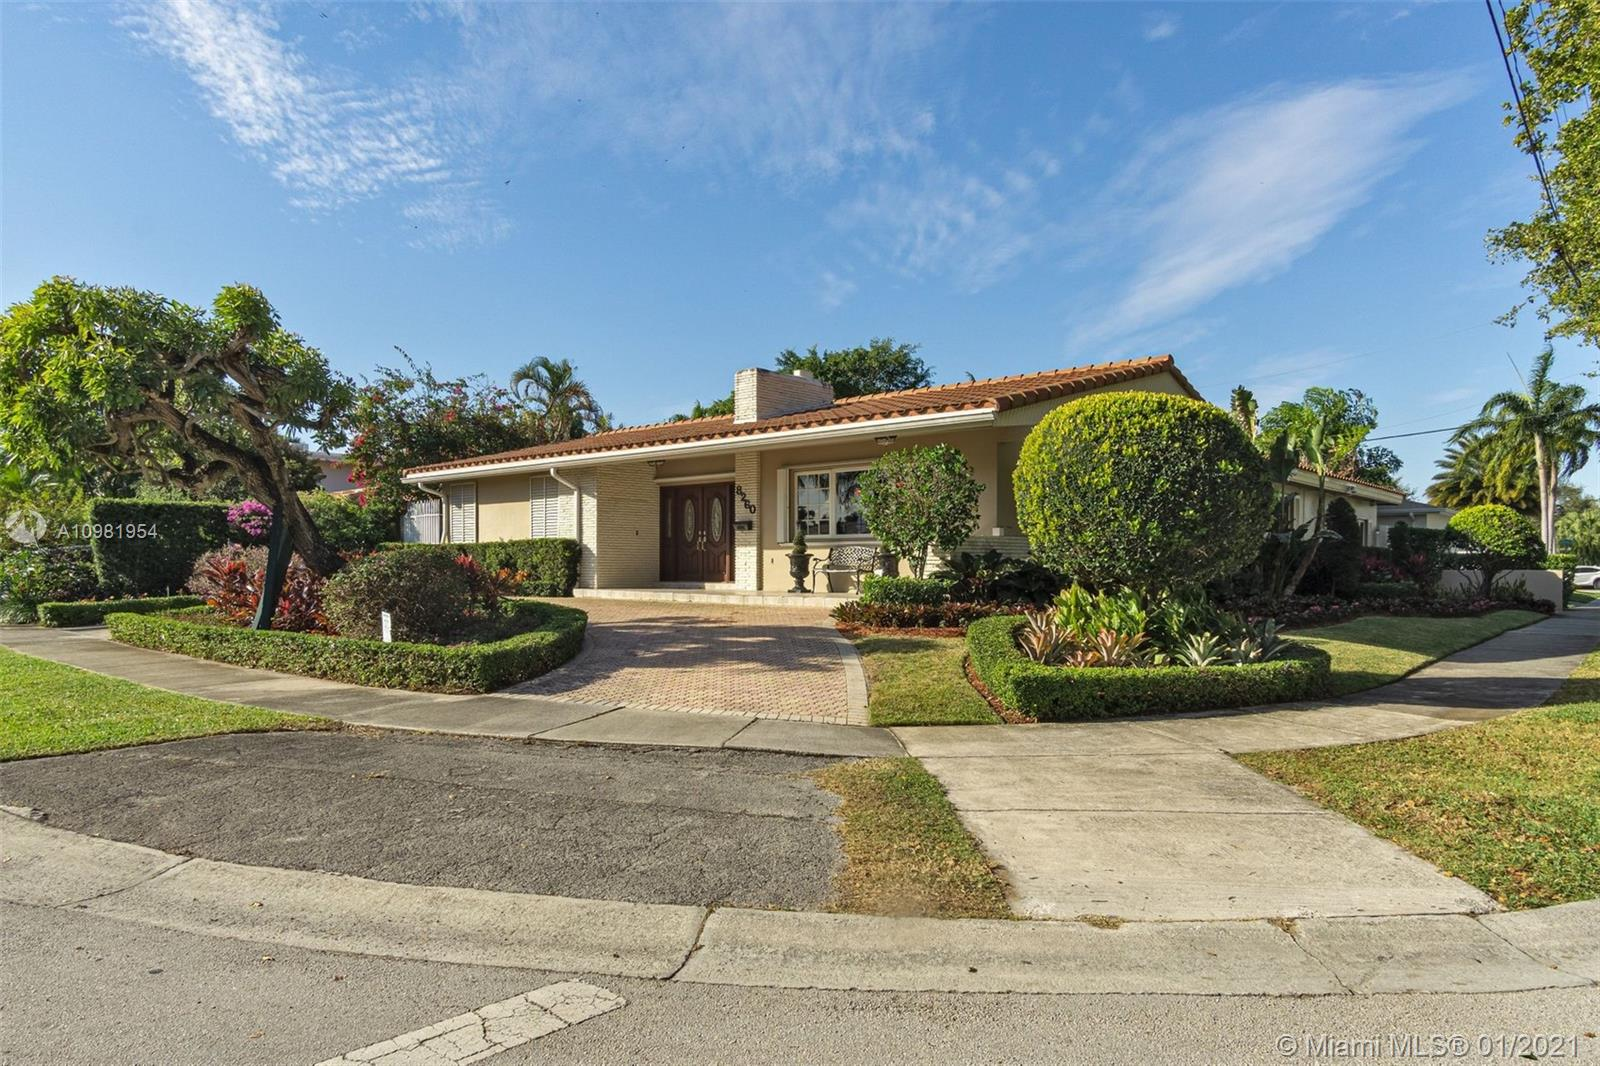 8260 NE 12th Ave, Miami, Florida 33138, 4 Bedrooms Bedrooms, ,4 BathroomsBathrooms,Residential,For Sale,8260 NE 12th Ave,A10981954